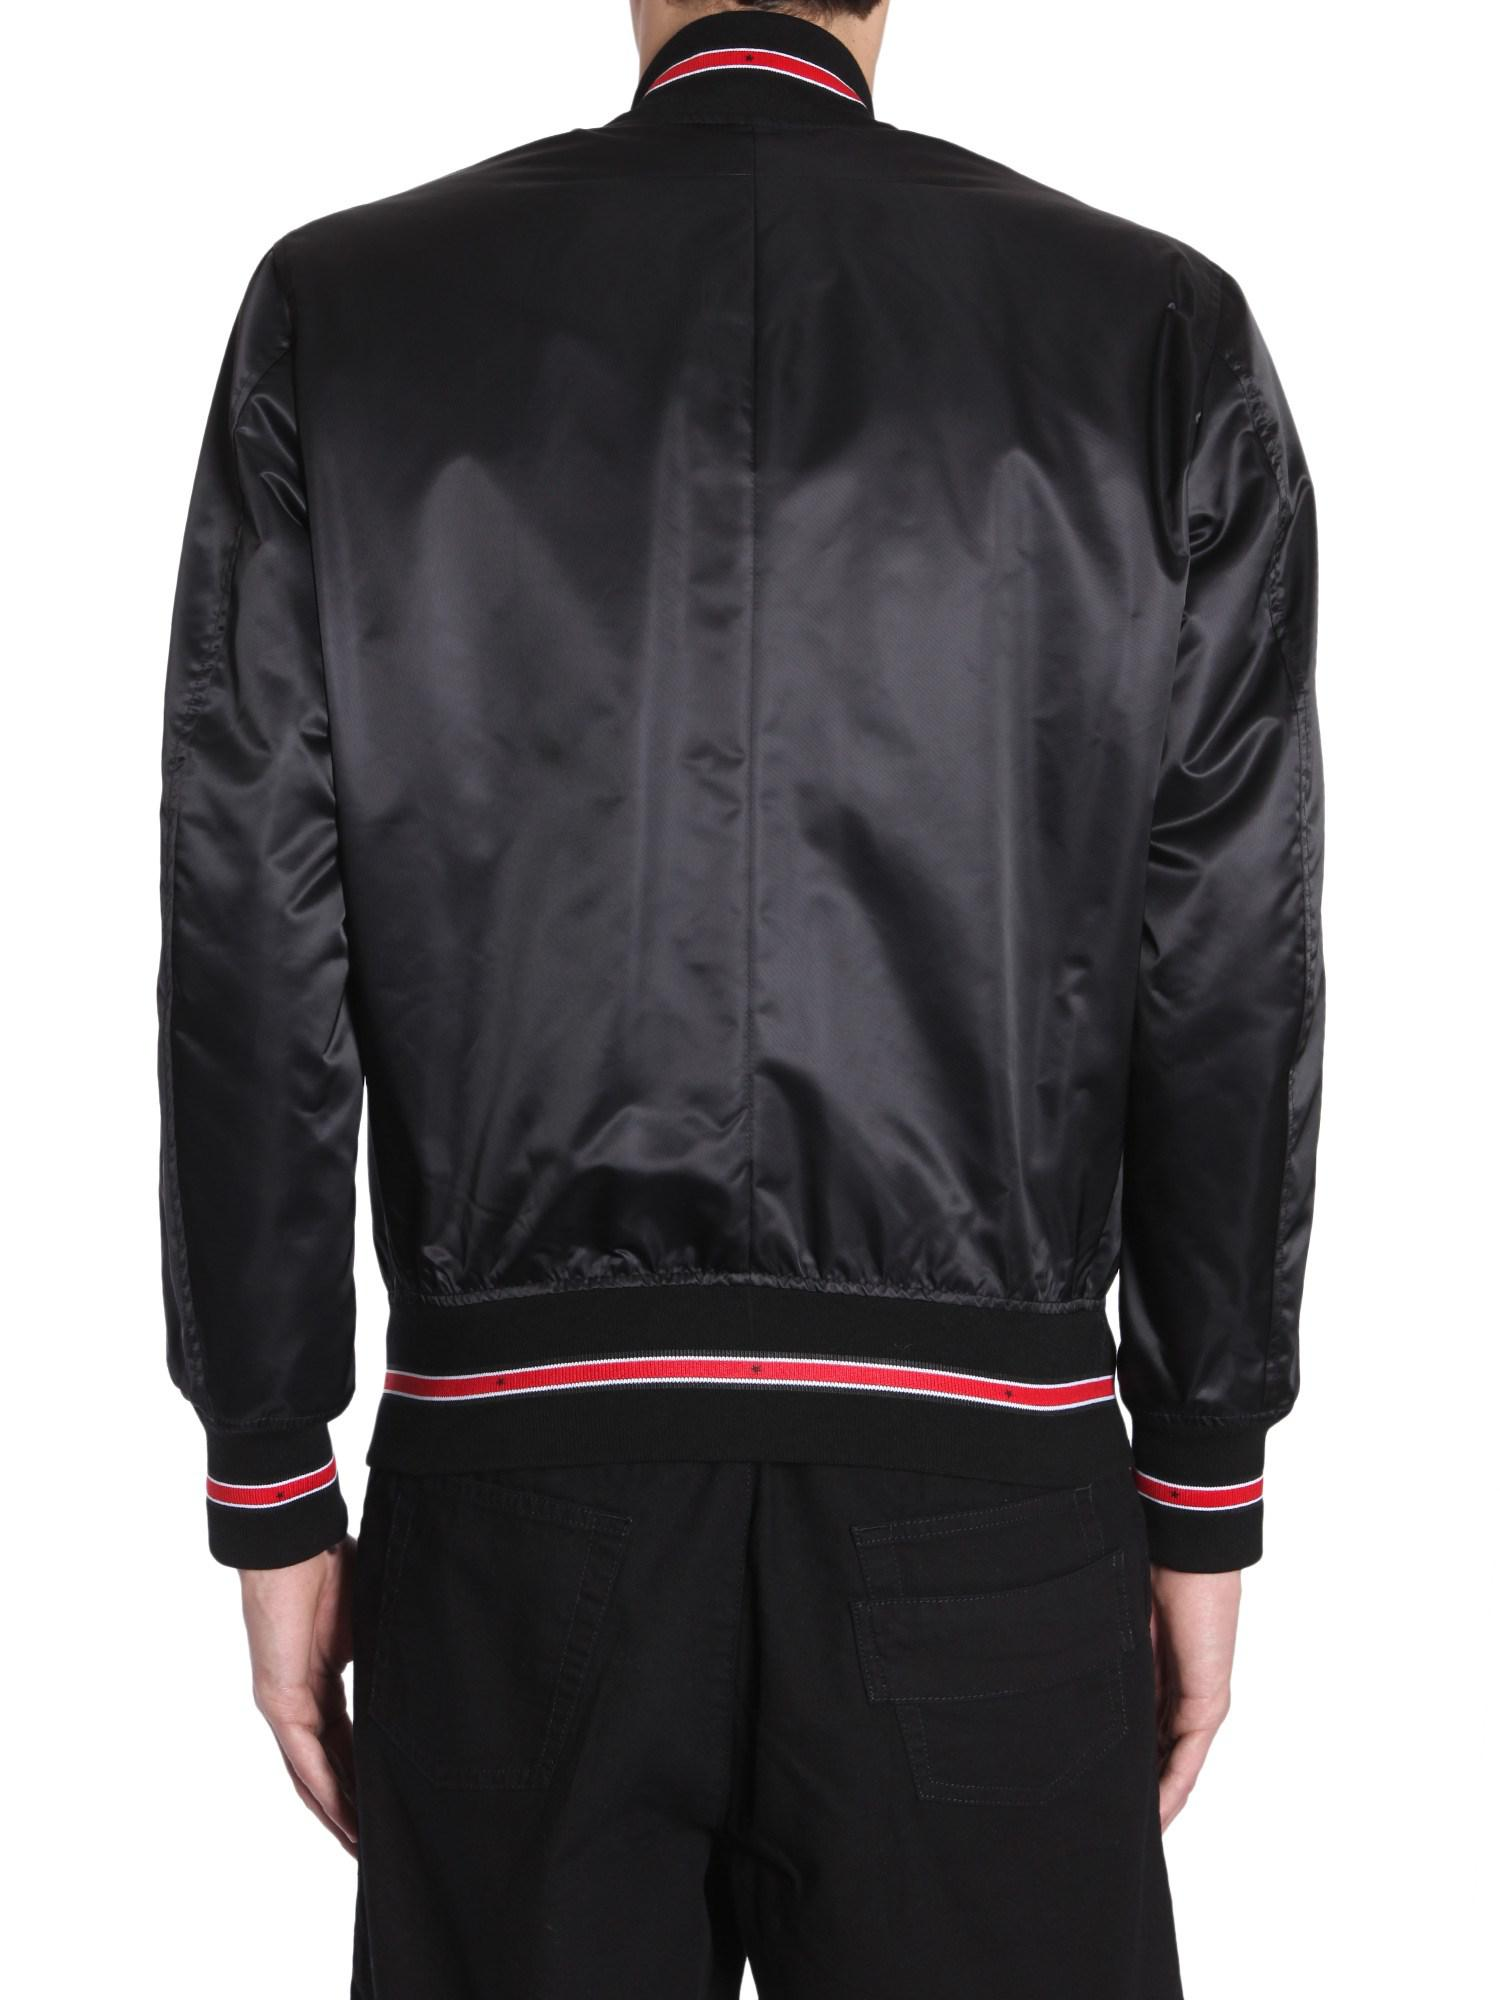 Givenchy Satin Bomber Jacket With Contrast Trim in Black for Men